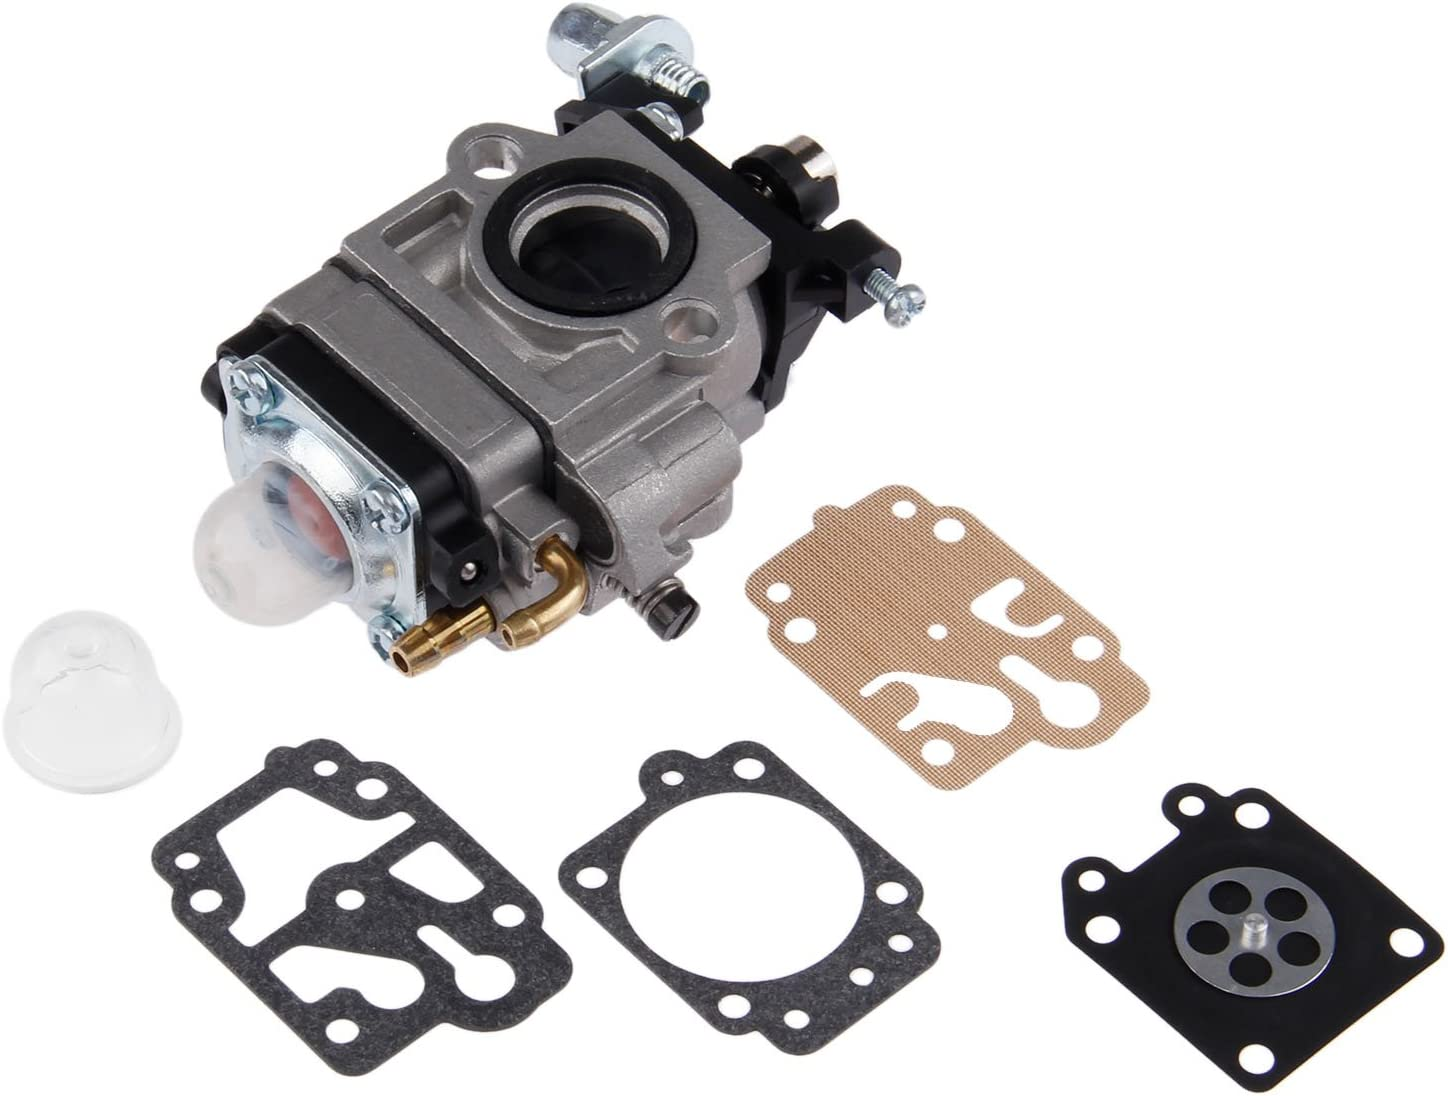 New Carburetor Carb For 43cc Lawn Brush Weed Cutter Engine Motor 1E40F-5 1E40F5